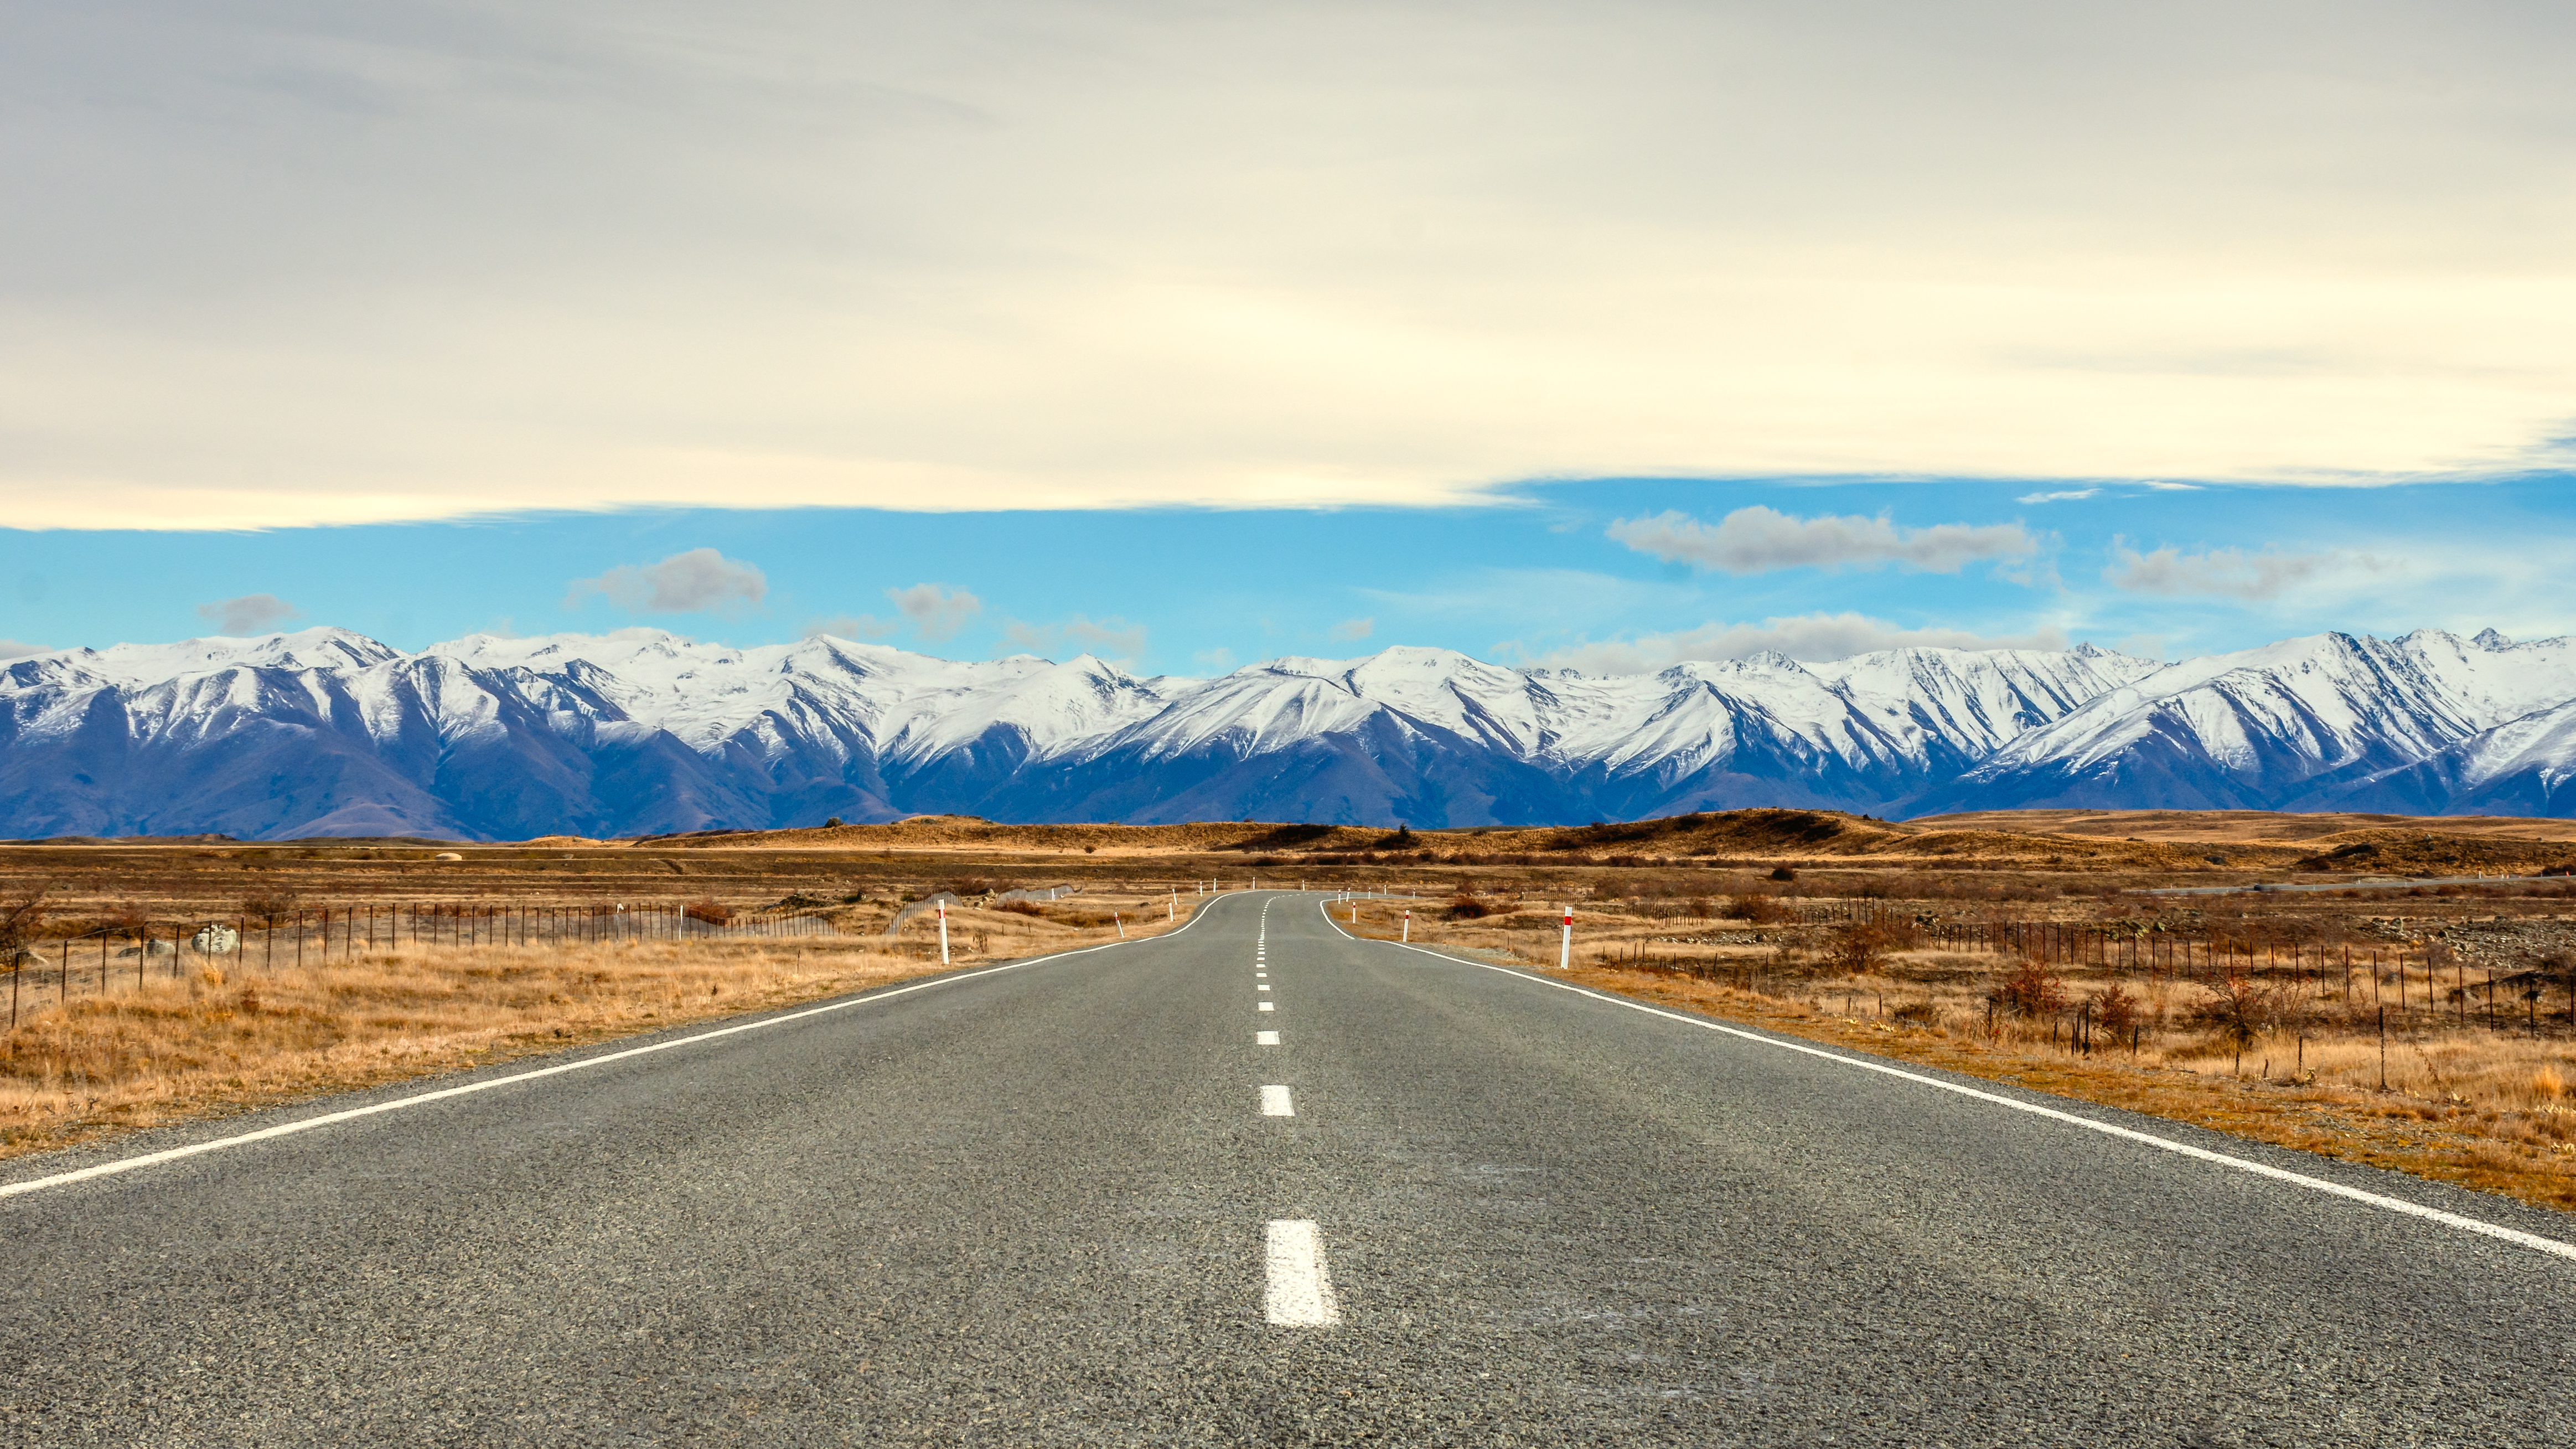 Southern Alps - New Zealand